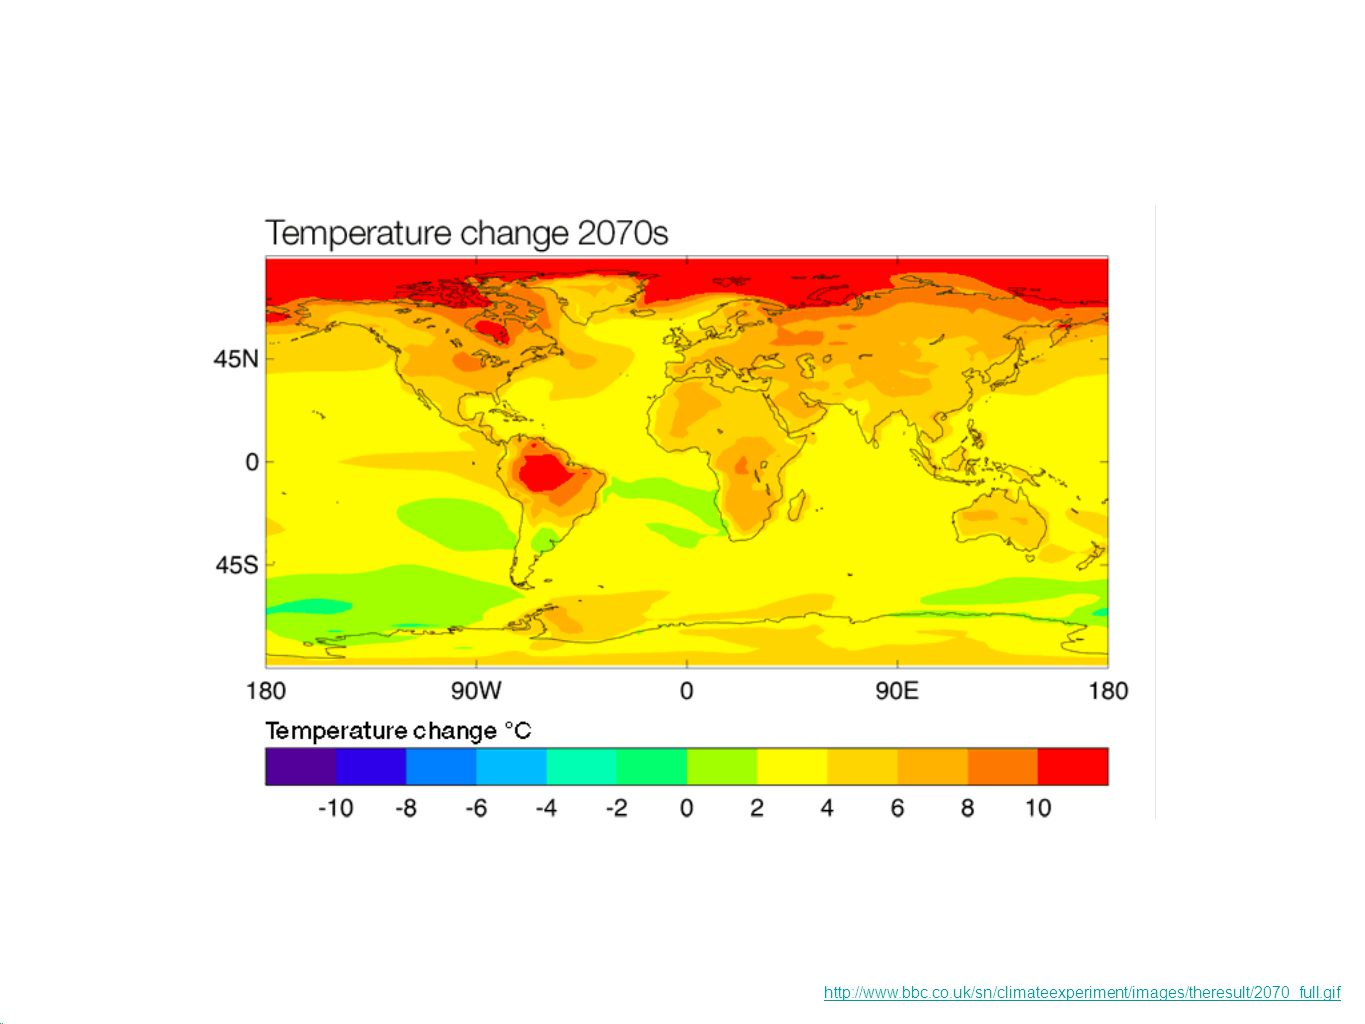 http://www.nag.co.uk/images/cpdn-temp_med.jpg http://www.bbc.co.uk/sn/climateexperiment/images/theresult/2070_full.gif